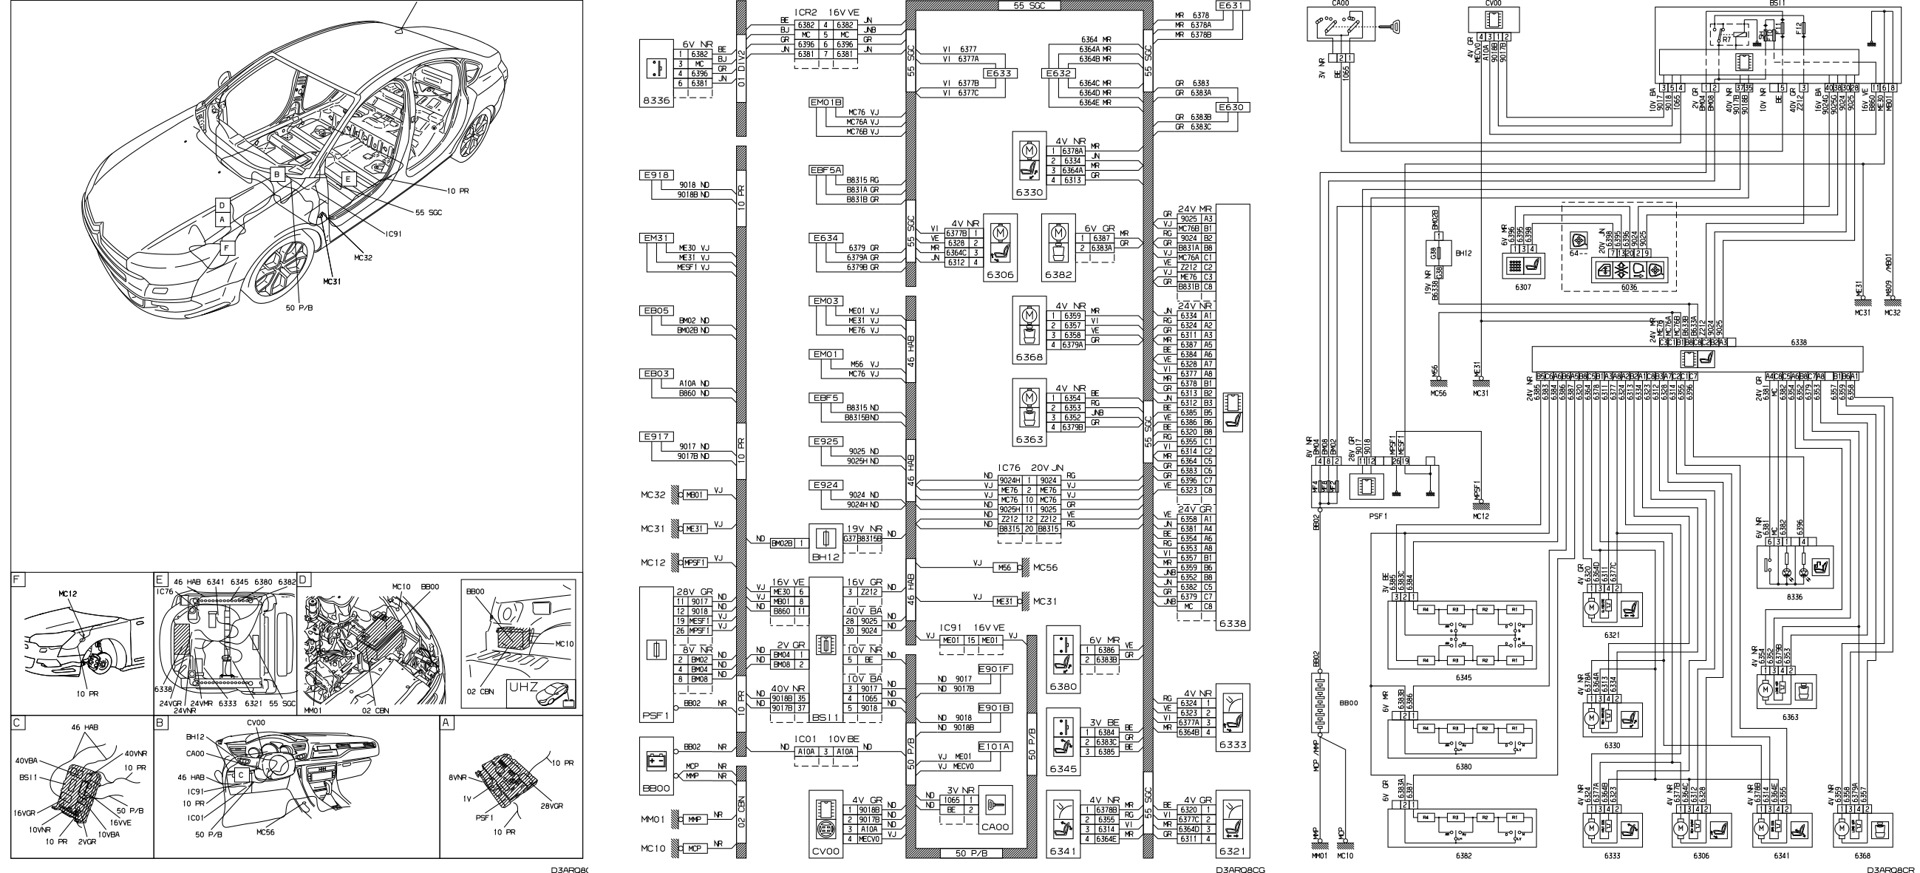 Citroen C5 Electrical Wiring Diagram List Of Schematic Circuit Diagrams Seats Or Chair Stage 2 Logbook Rh Drive2 Com